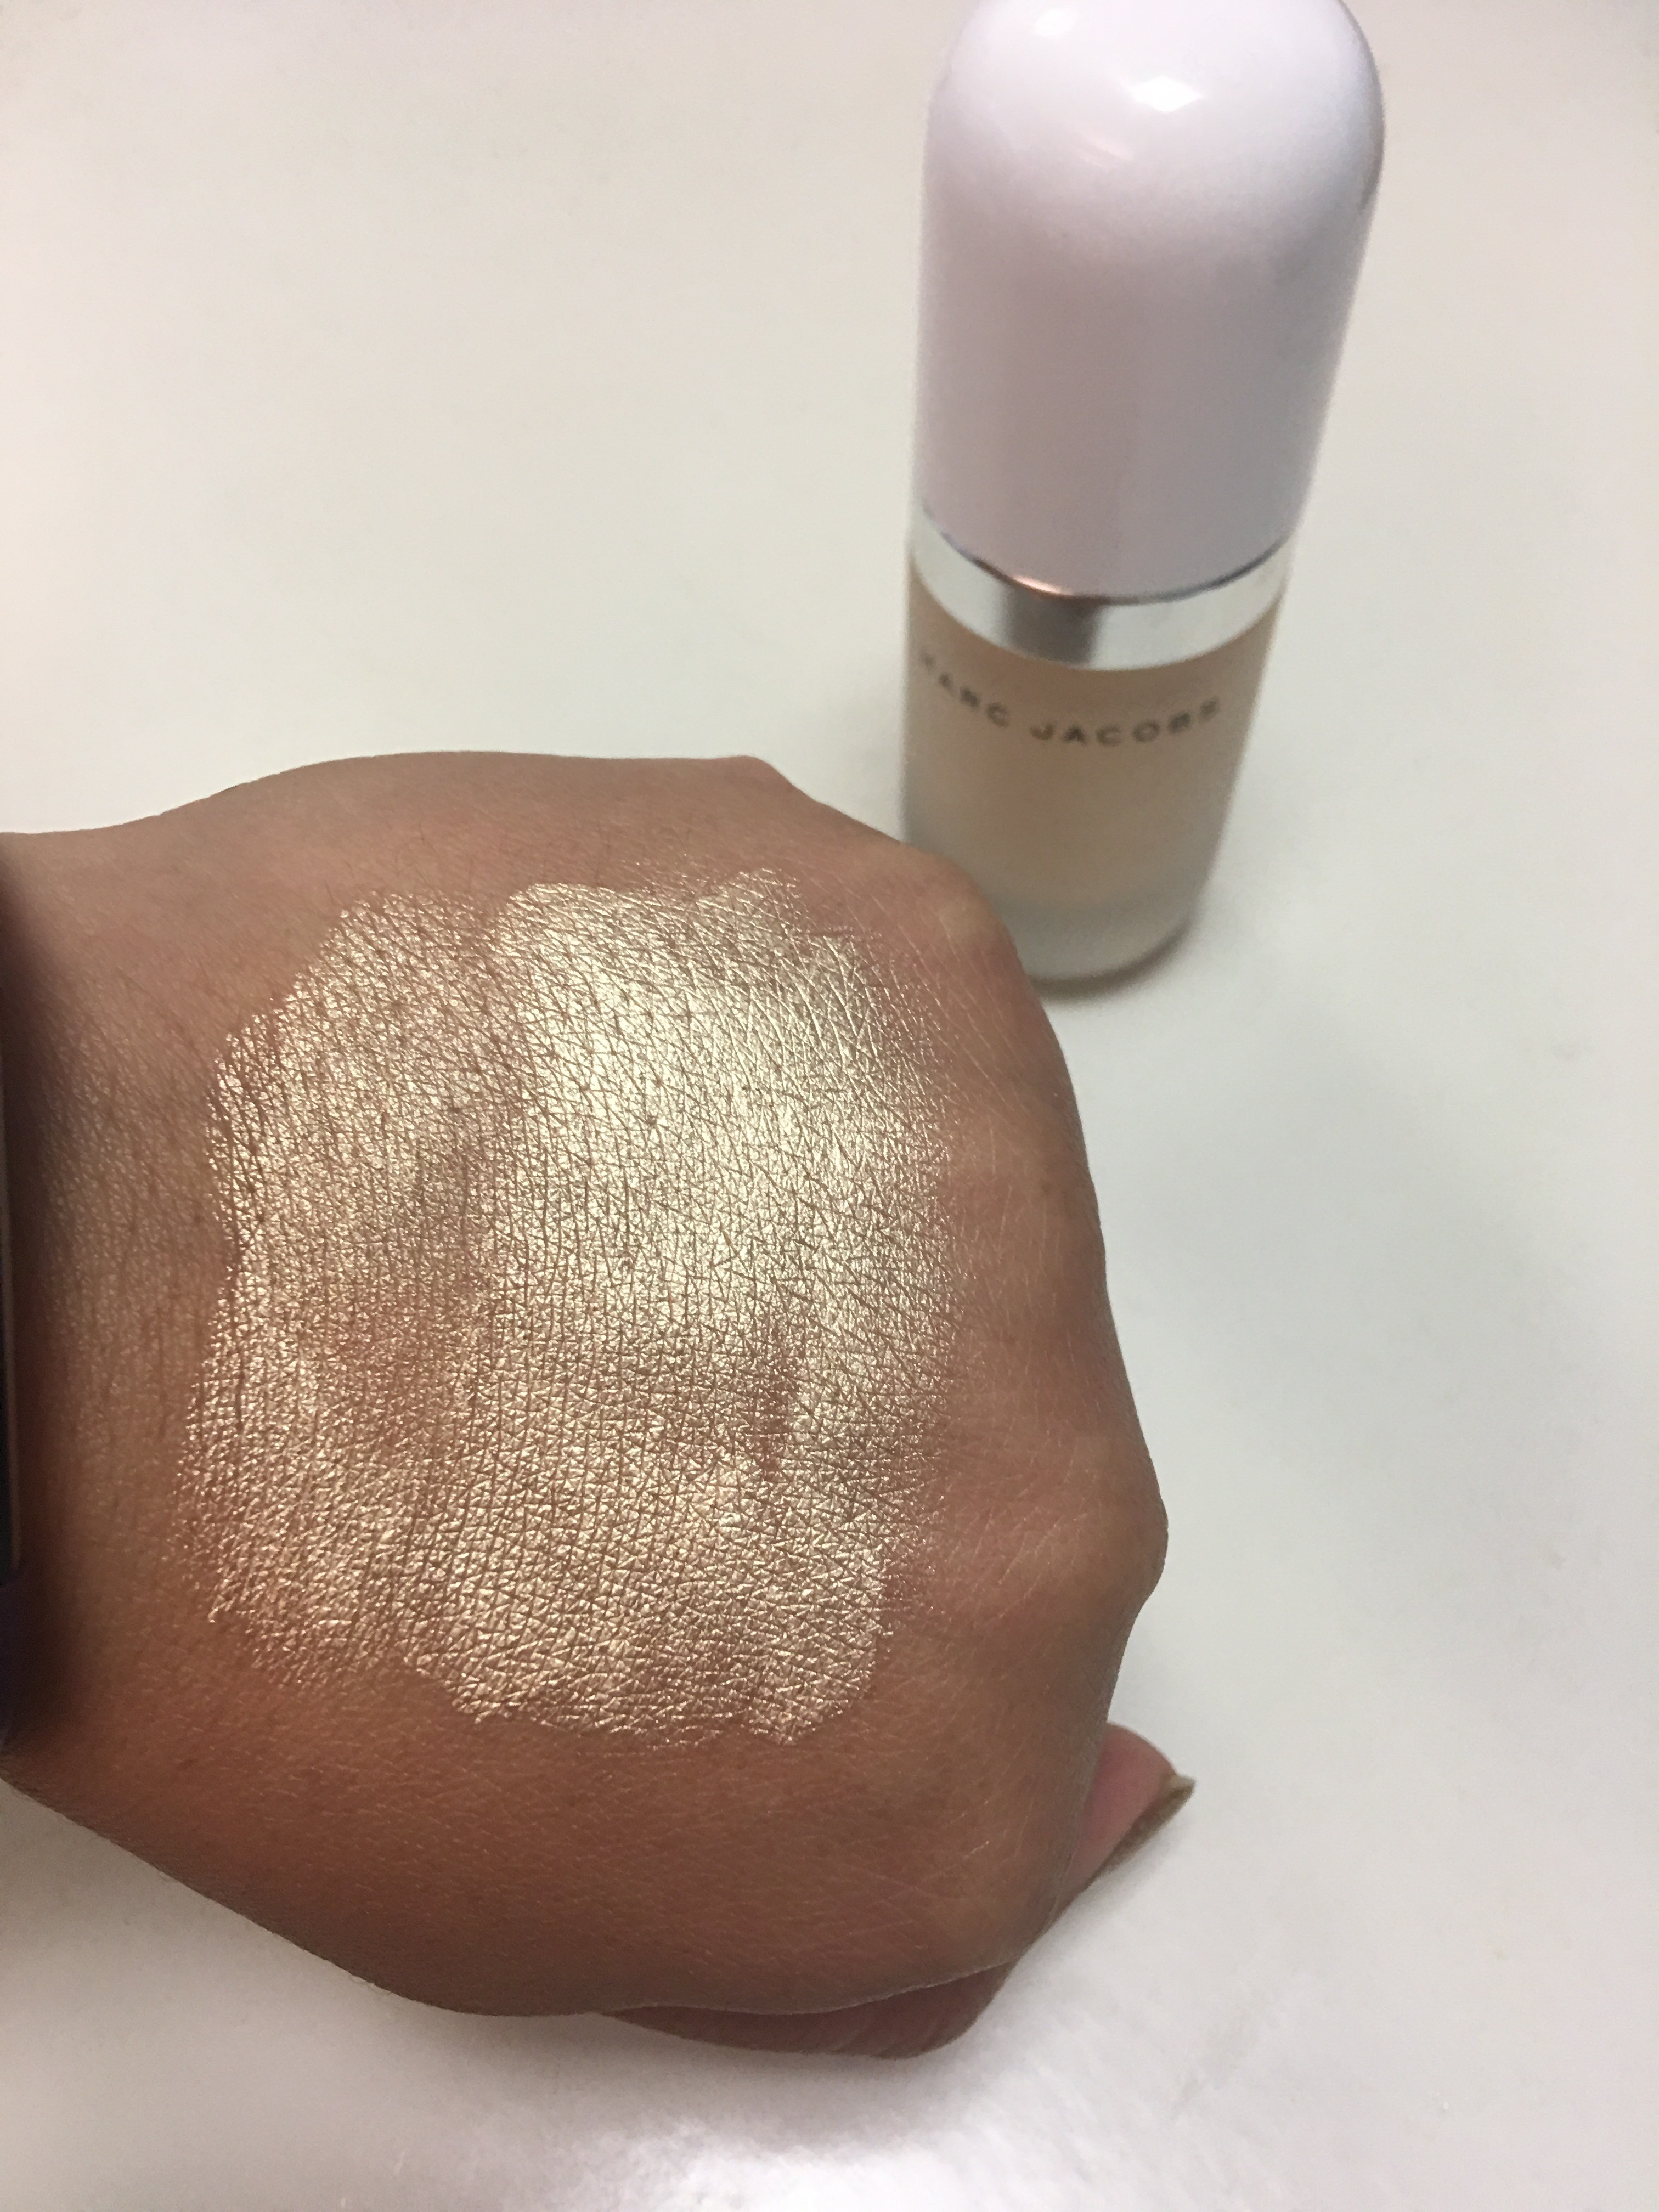 52a03402f91 I have been seeing the Mark Jacobs coconut glow highlighter floating around  on Instagram for a few weeks now. So when I found out that I was going to  be ...